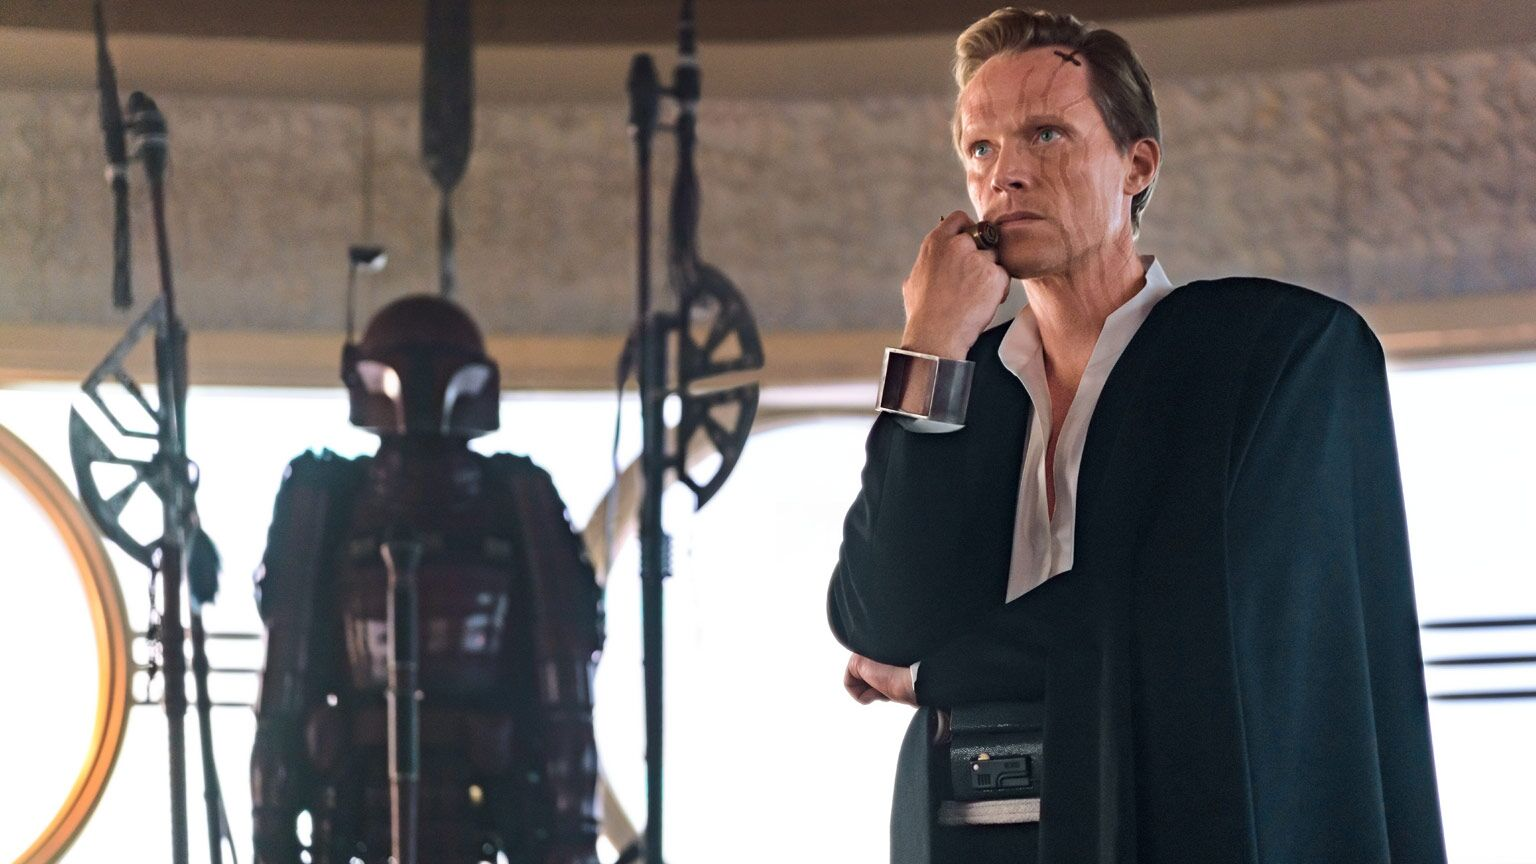 Solo actor Paul Bettany reacts to film's criticism